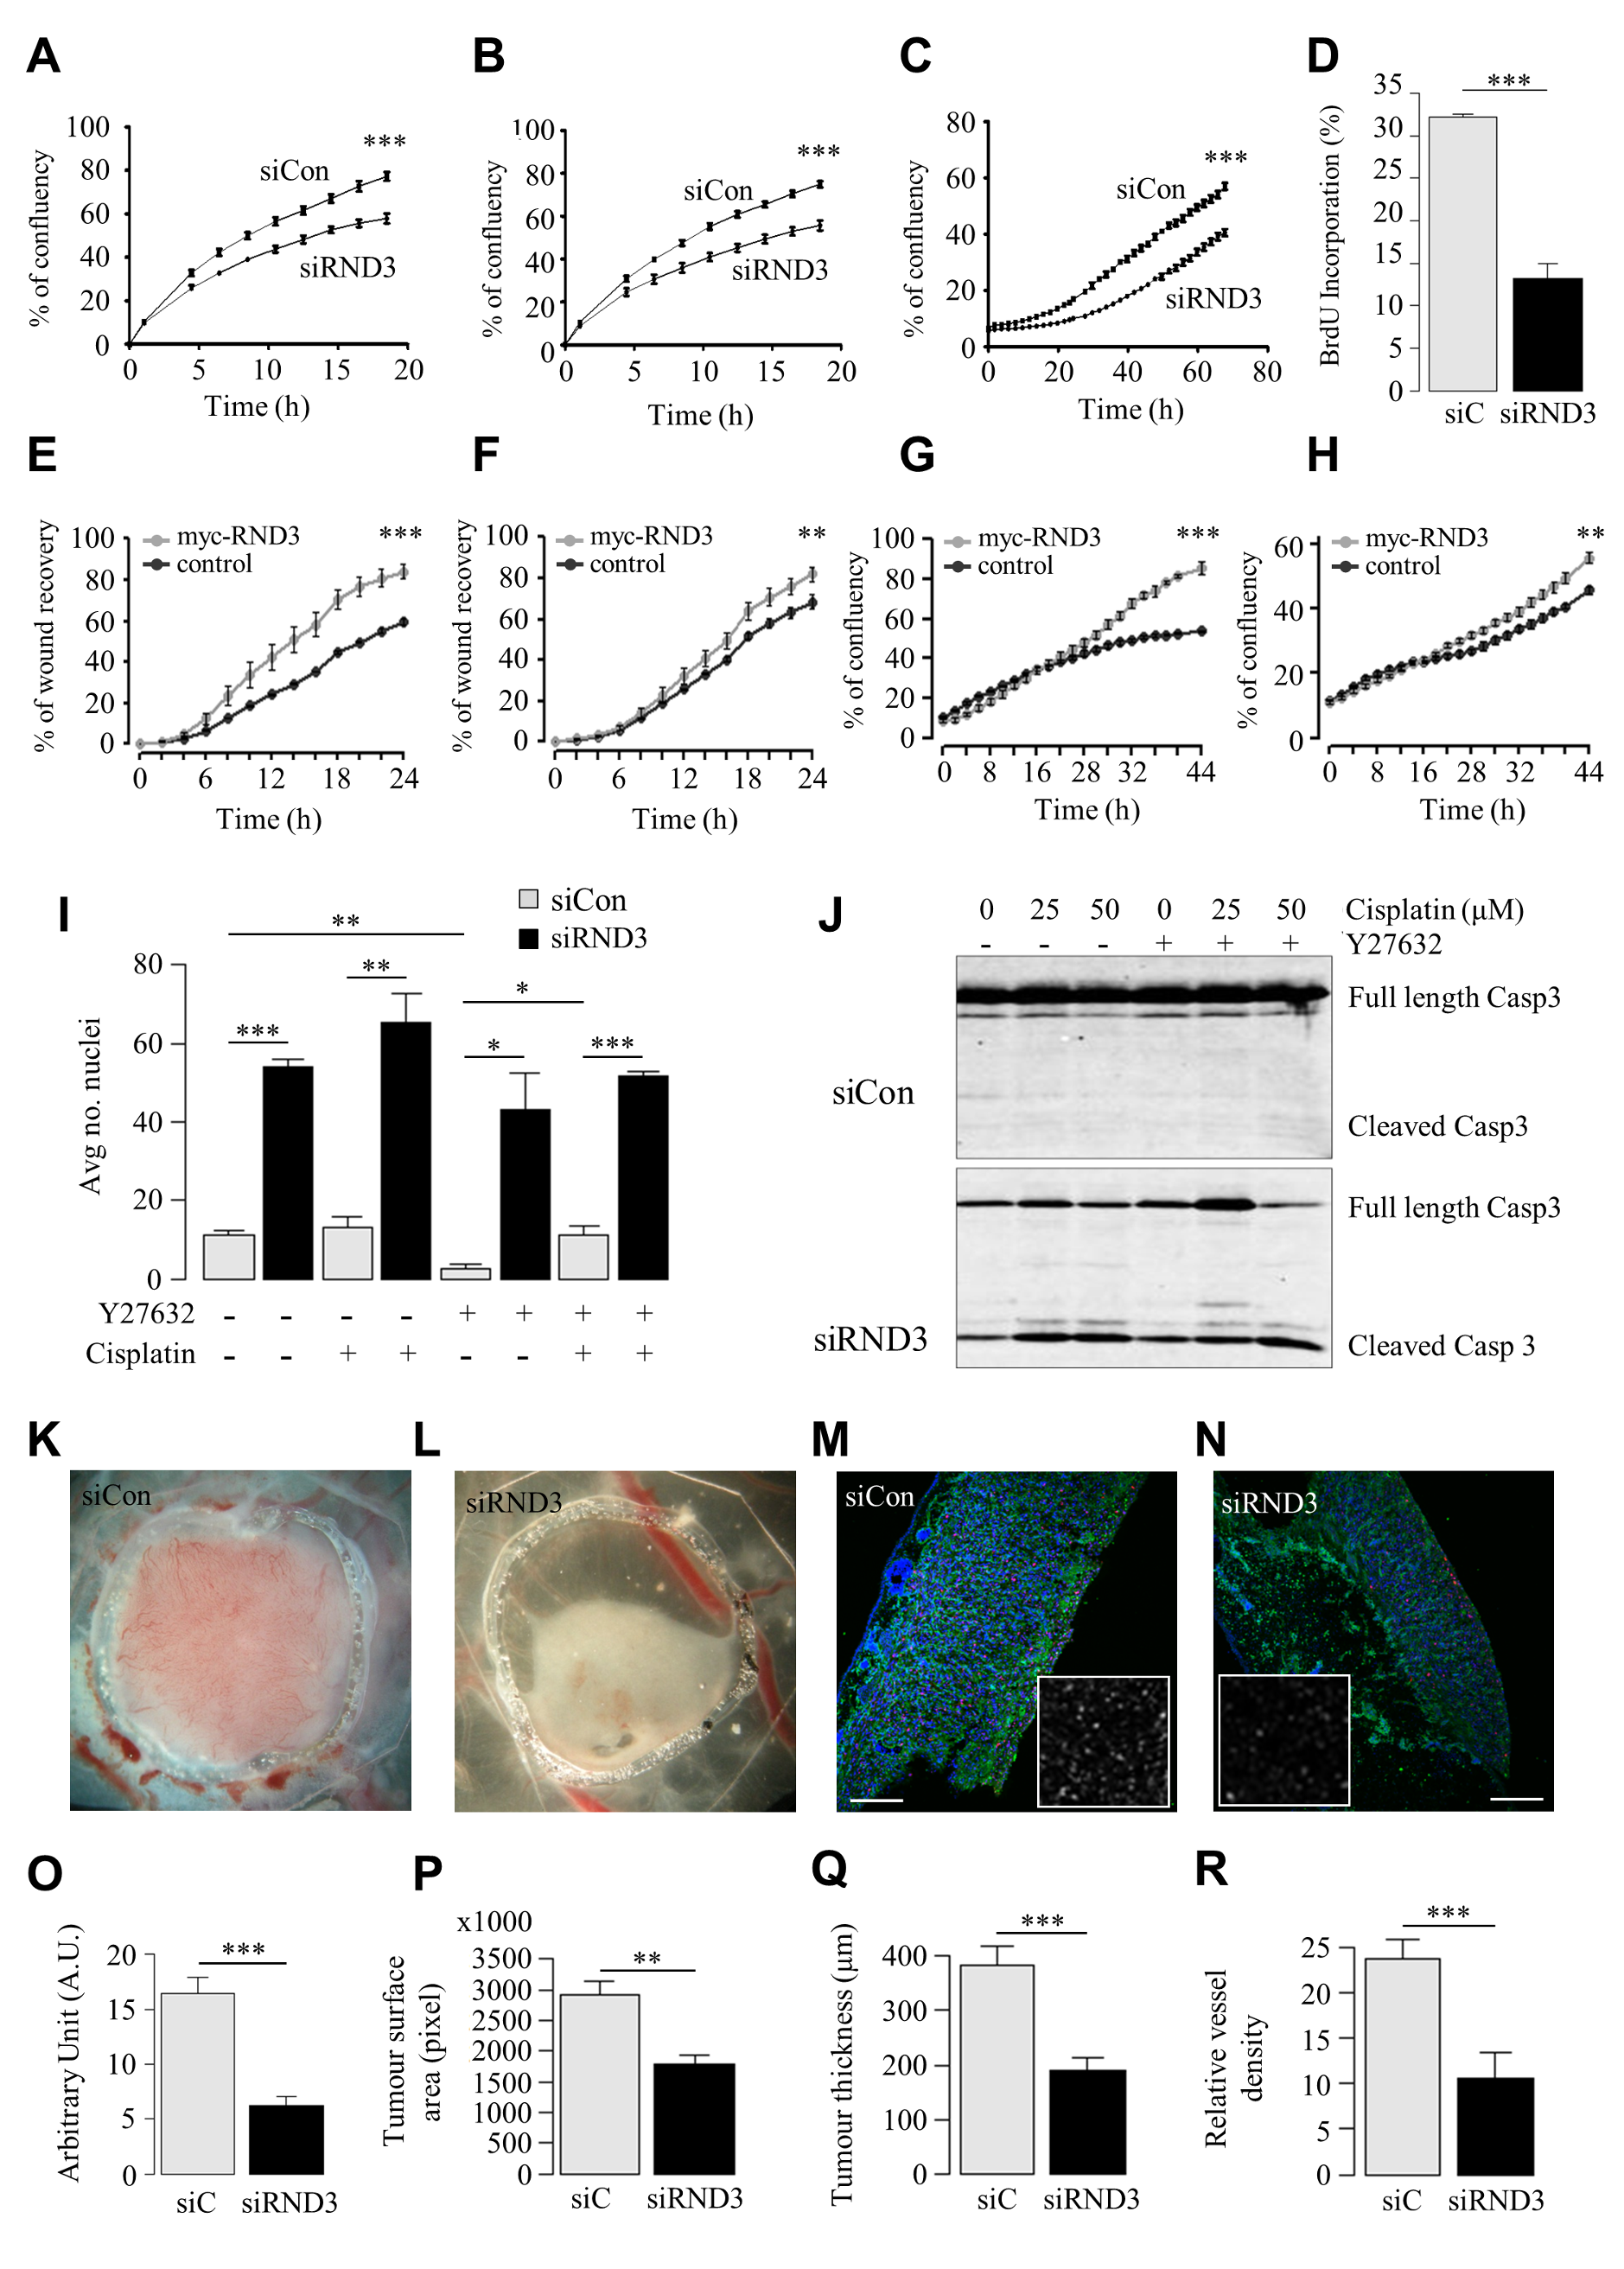 <i>In vitro</i> and <i>in vivo</i> RND3 silencing reduces cell proliferation and migration, induces apoptosis and reduces tumour mass.